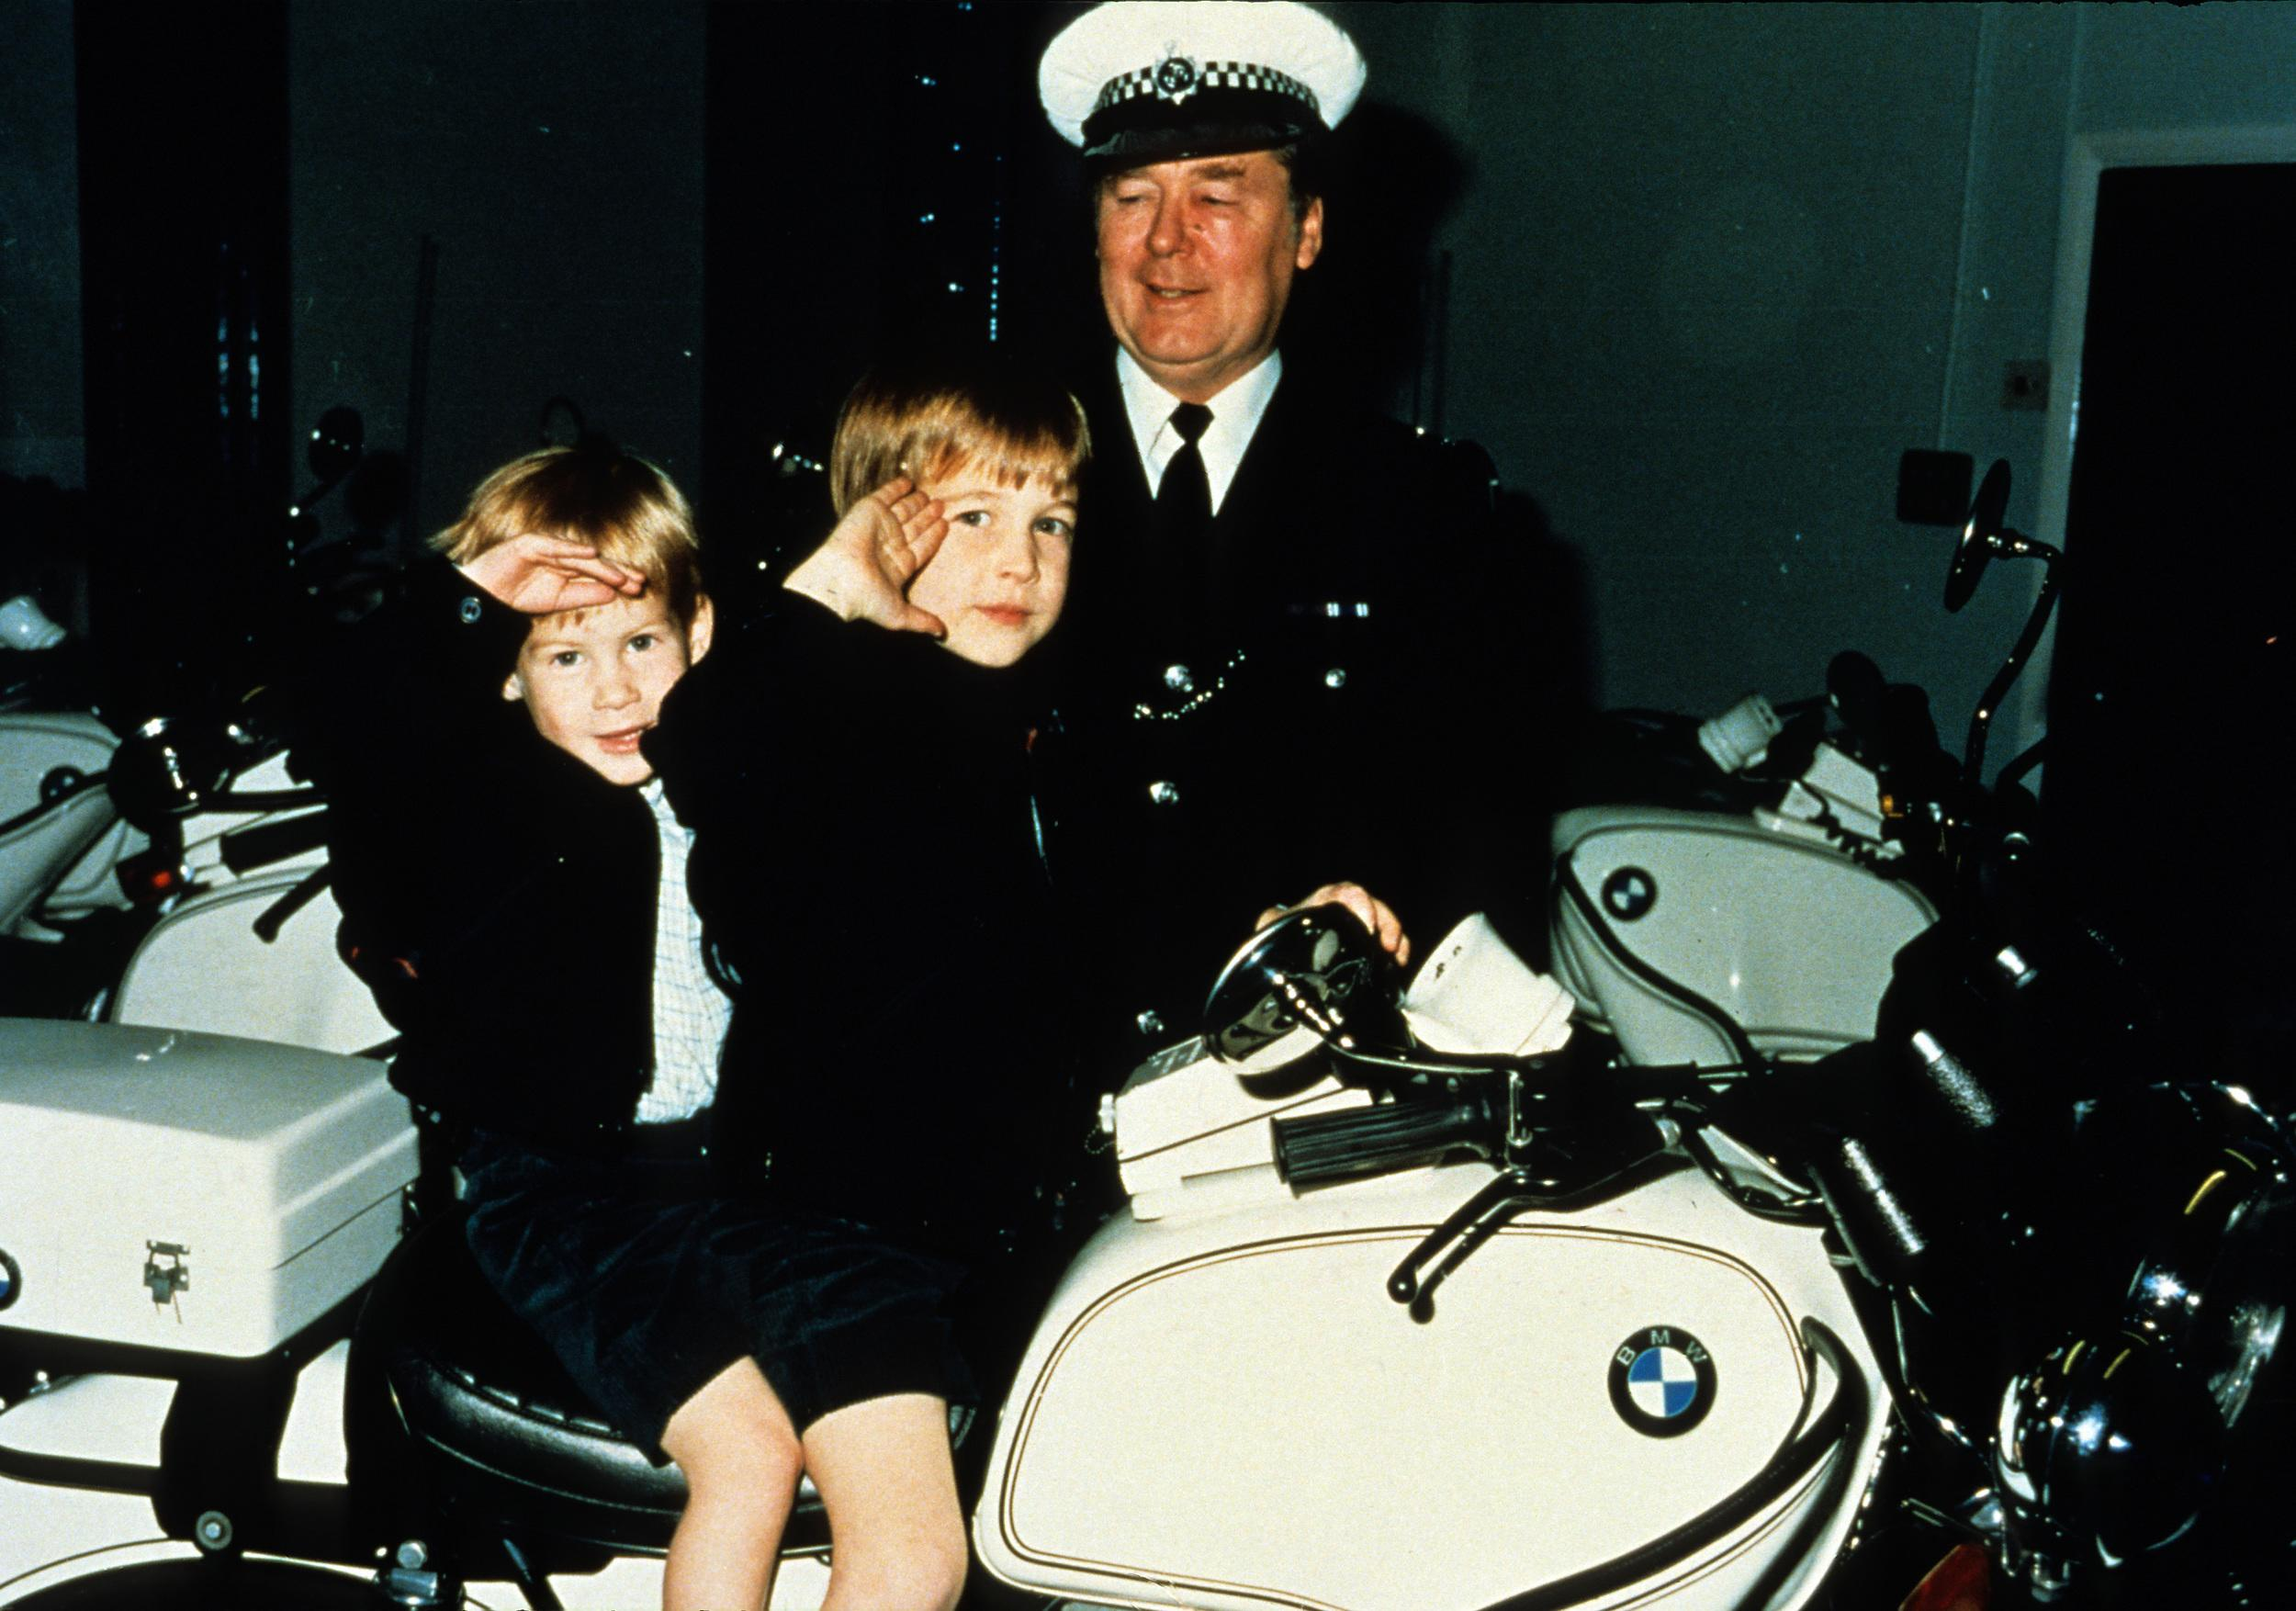 WINDOSR- NOVEMBER: (FILE PHOTO)  Prince William and Prince Harry  give a royal salute from atop a police motorbike during a visit to the poloice force in November 1987 in Windsor, England.   (Photo by Anwar Hussein/Getty Images)